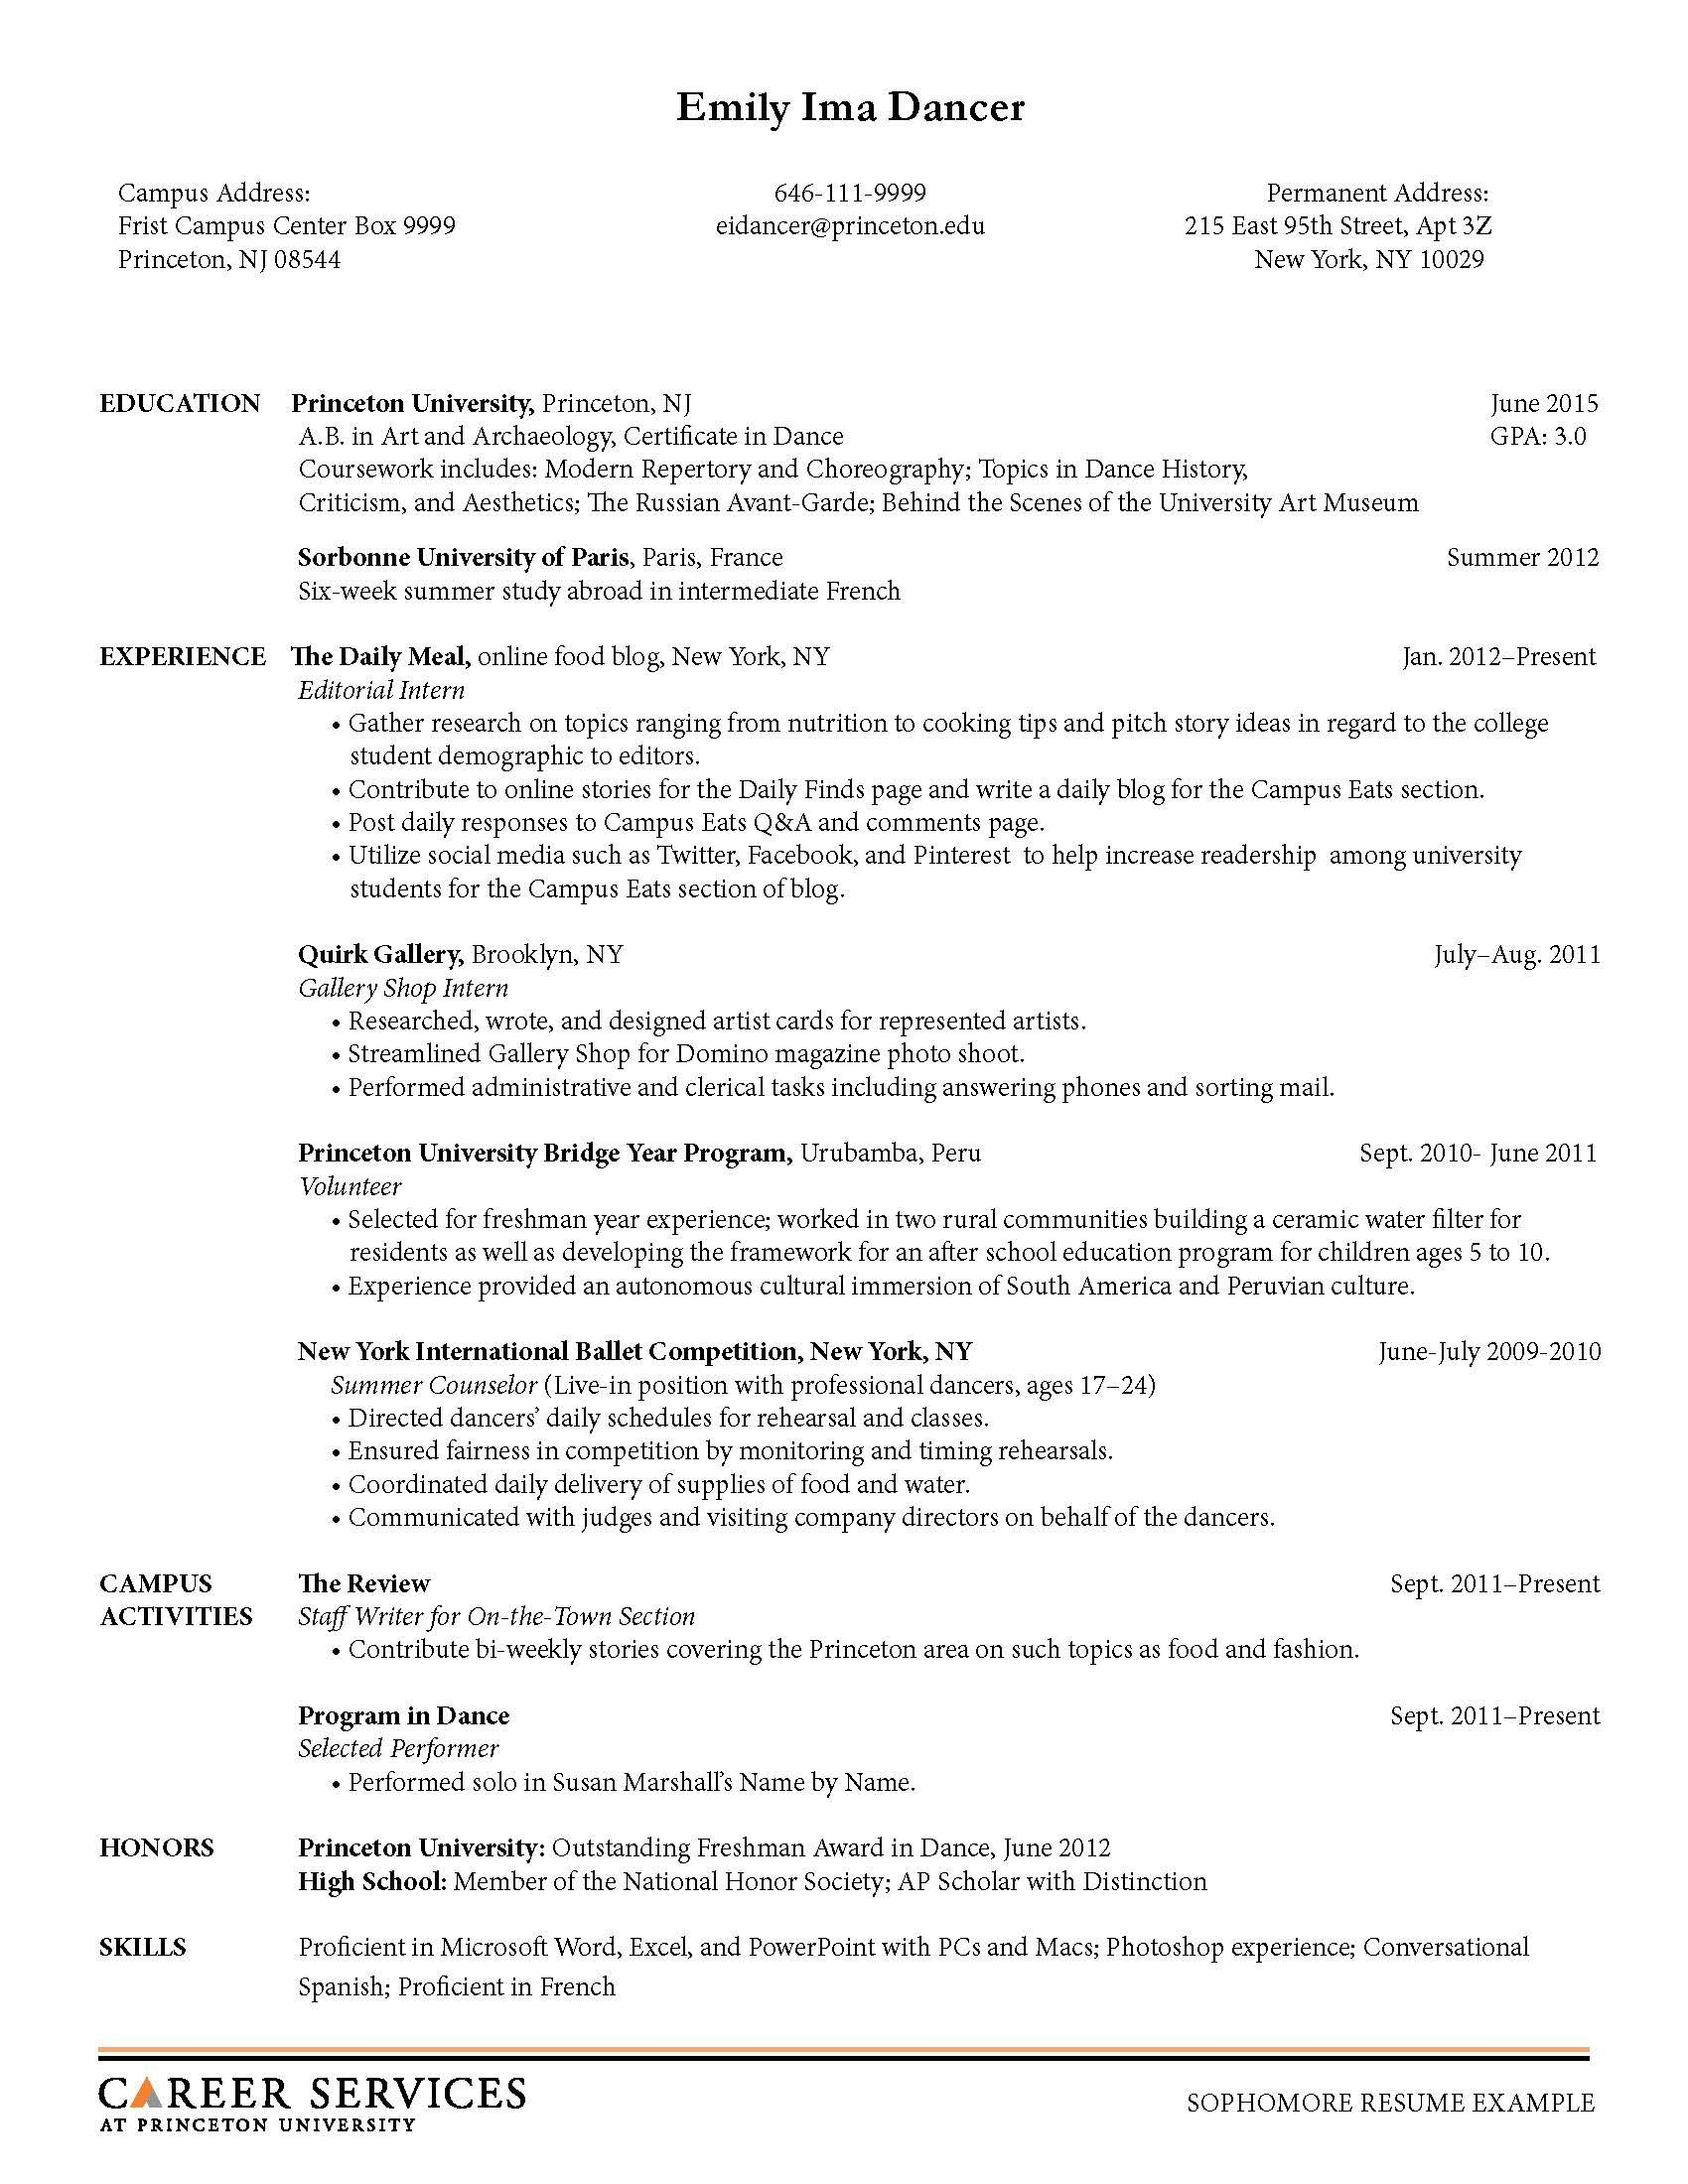 Opposenewapstandardsus  Marvelous Sample Resume Resume And Career On Pinterest With Excellent Resume Template Free Online Besides Examples Of Resumes For Teachers Furthermore Cosmetology Resume Samples With Divine Mortgage Underwriter Resume Also Yahoo Resume Builder In Addition How To Write A Successful Resume And Free Professional Resume Template As Well As Best Resume Writer Additionally How To Write A Resume For Internship From Pinterestcom With Opposenewapstandardsus  Excellent Sample Resume Resume And Career On Pinterest With Divine Resume Template Free Online Besides Examples Of Resumes For Teachers Furthermore Cosmetology Resume Samples And Marvelous Mortgage Underwriter Resume Also Yahoo Resume Builder In Addition How To Write A Successful Resume From Pinterestcom